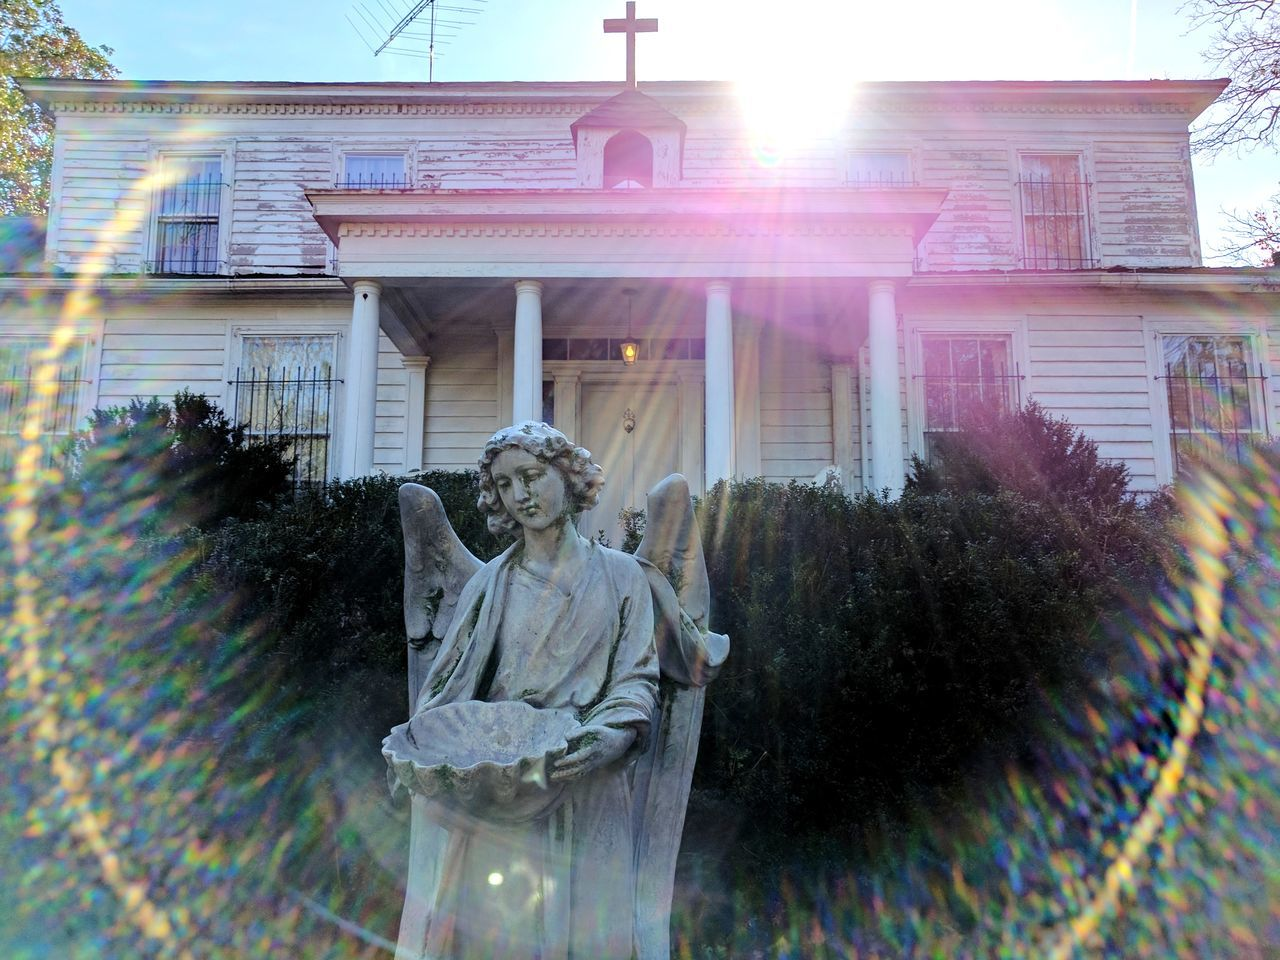 Statue Church Weird LenseFlare Outdoors Religious Images